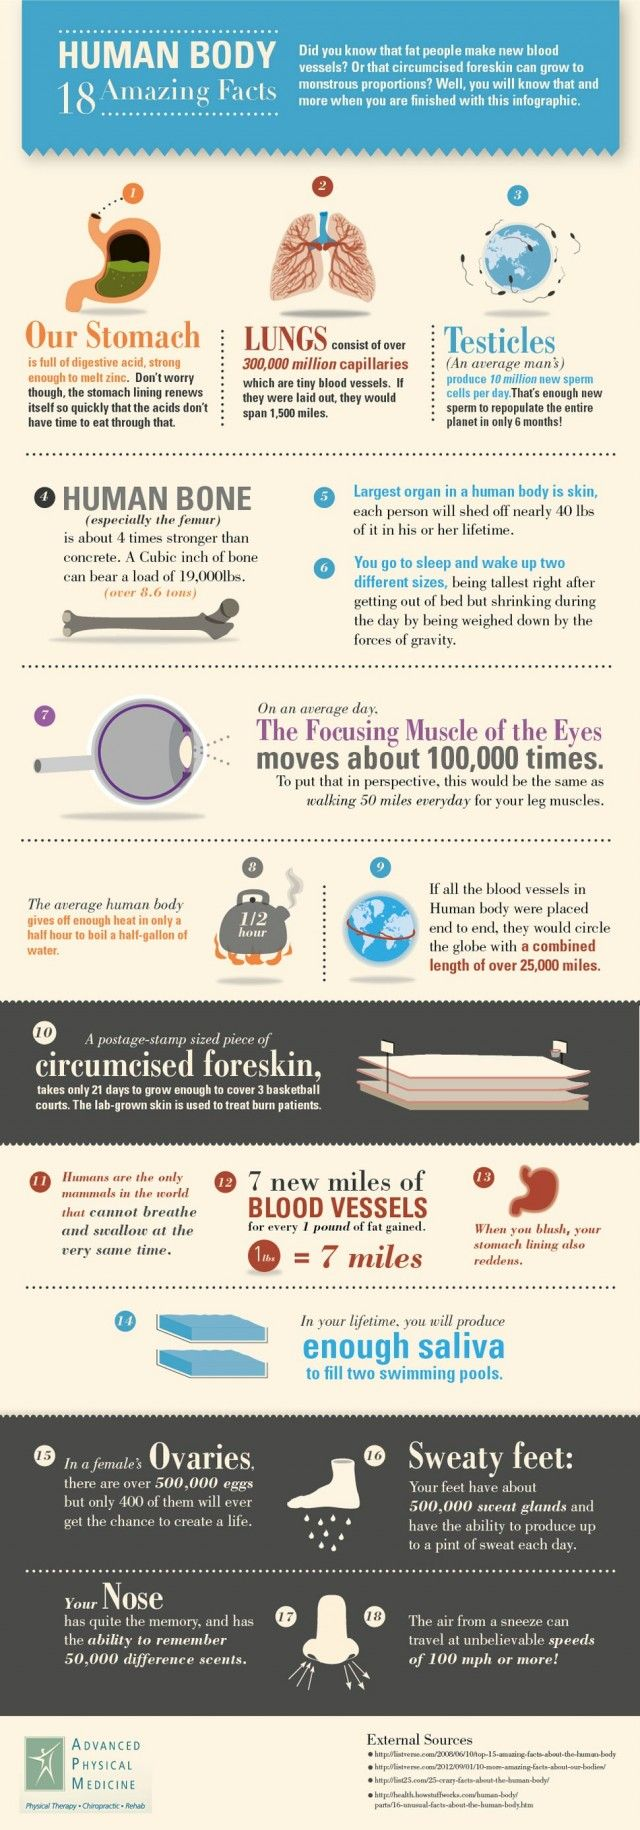 Human Body - 18 Amazing Facts #infographic